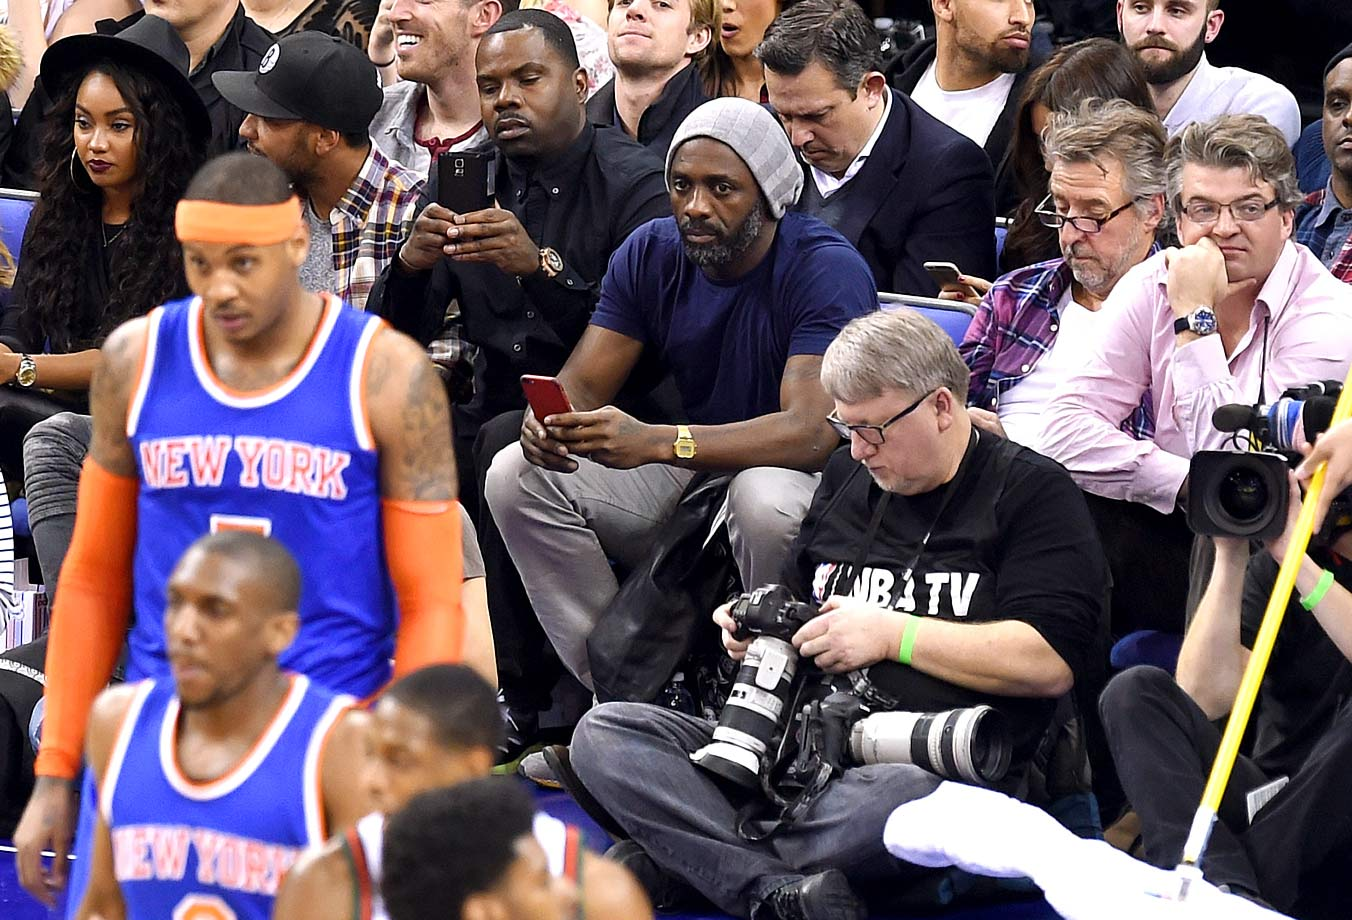 Jan. 15, 2015: New York Knicks vs. Milwaukee Bucks at 02 Arena in London